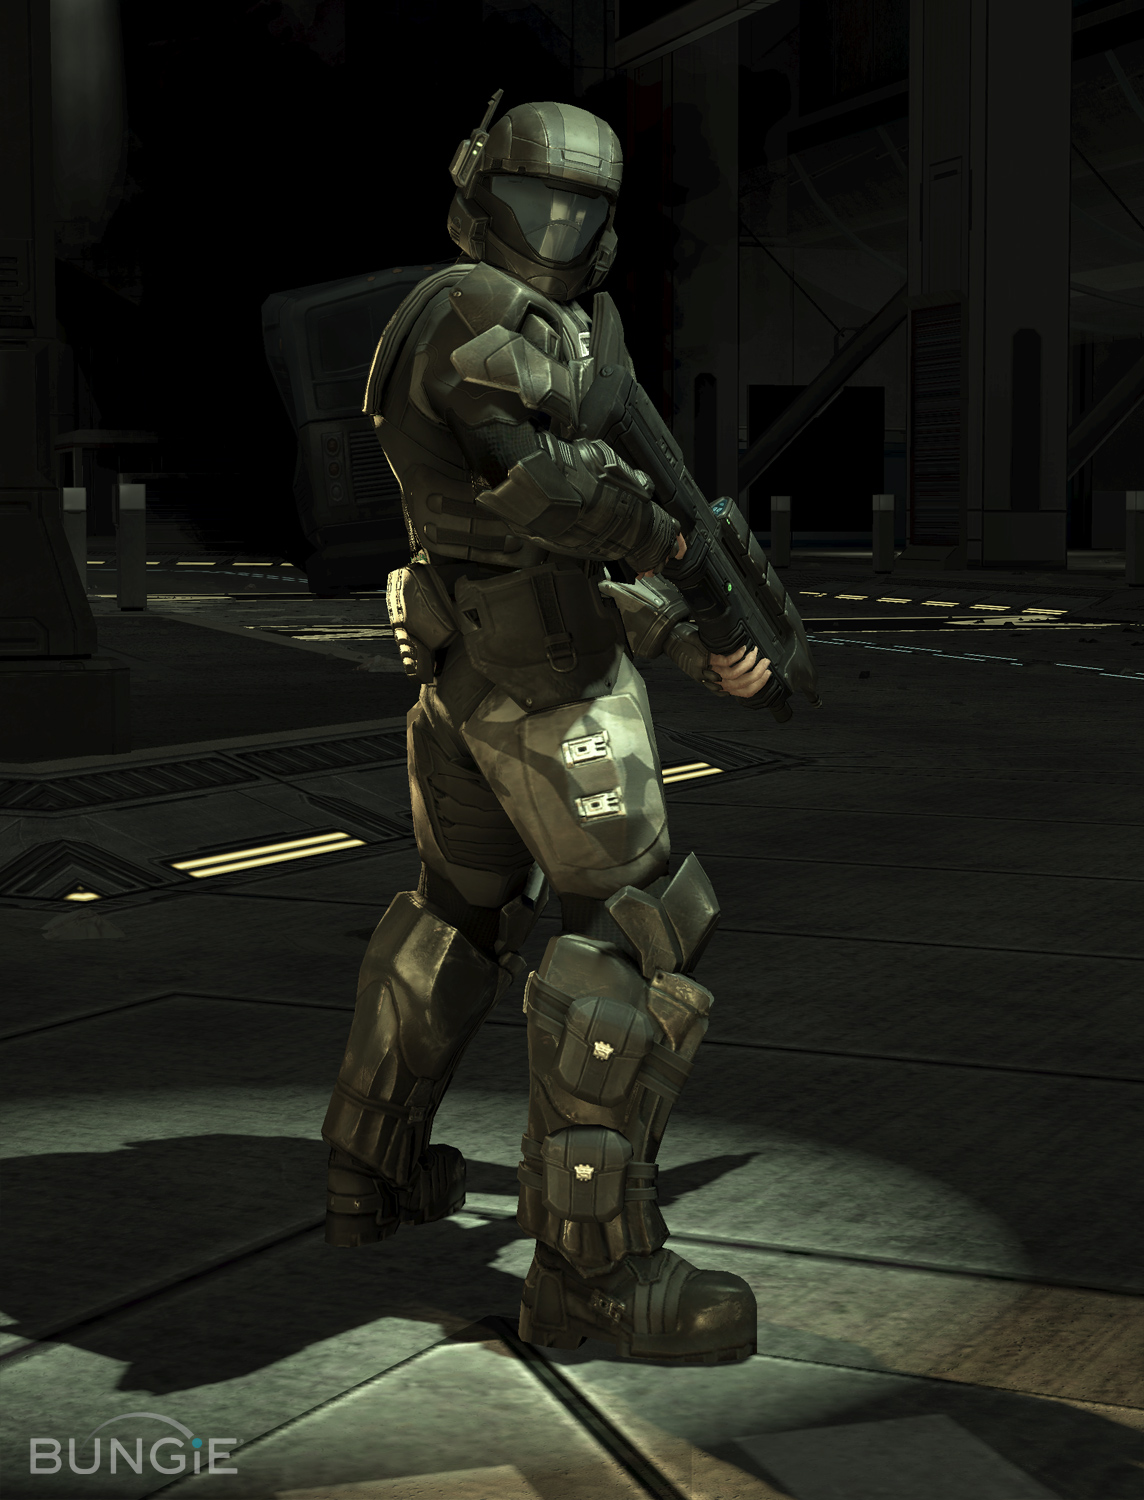 Scott 39 s boredom escape top 10 halo characters - Halo odst images ...